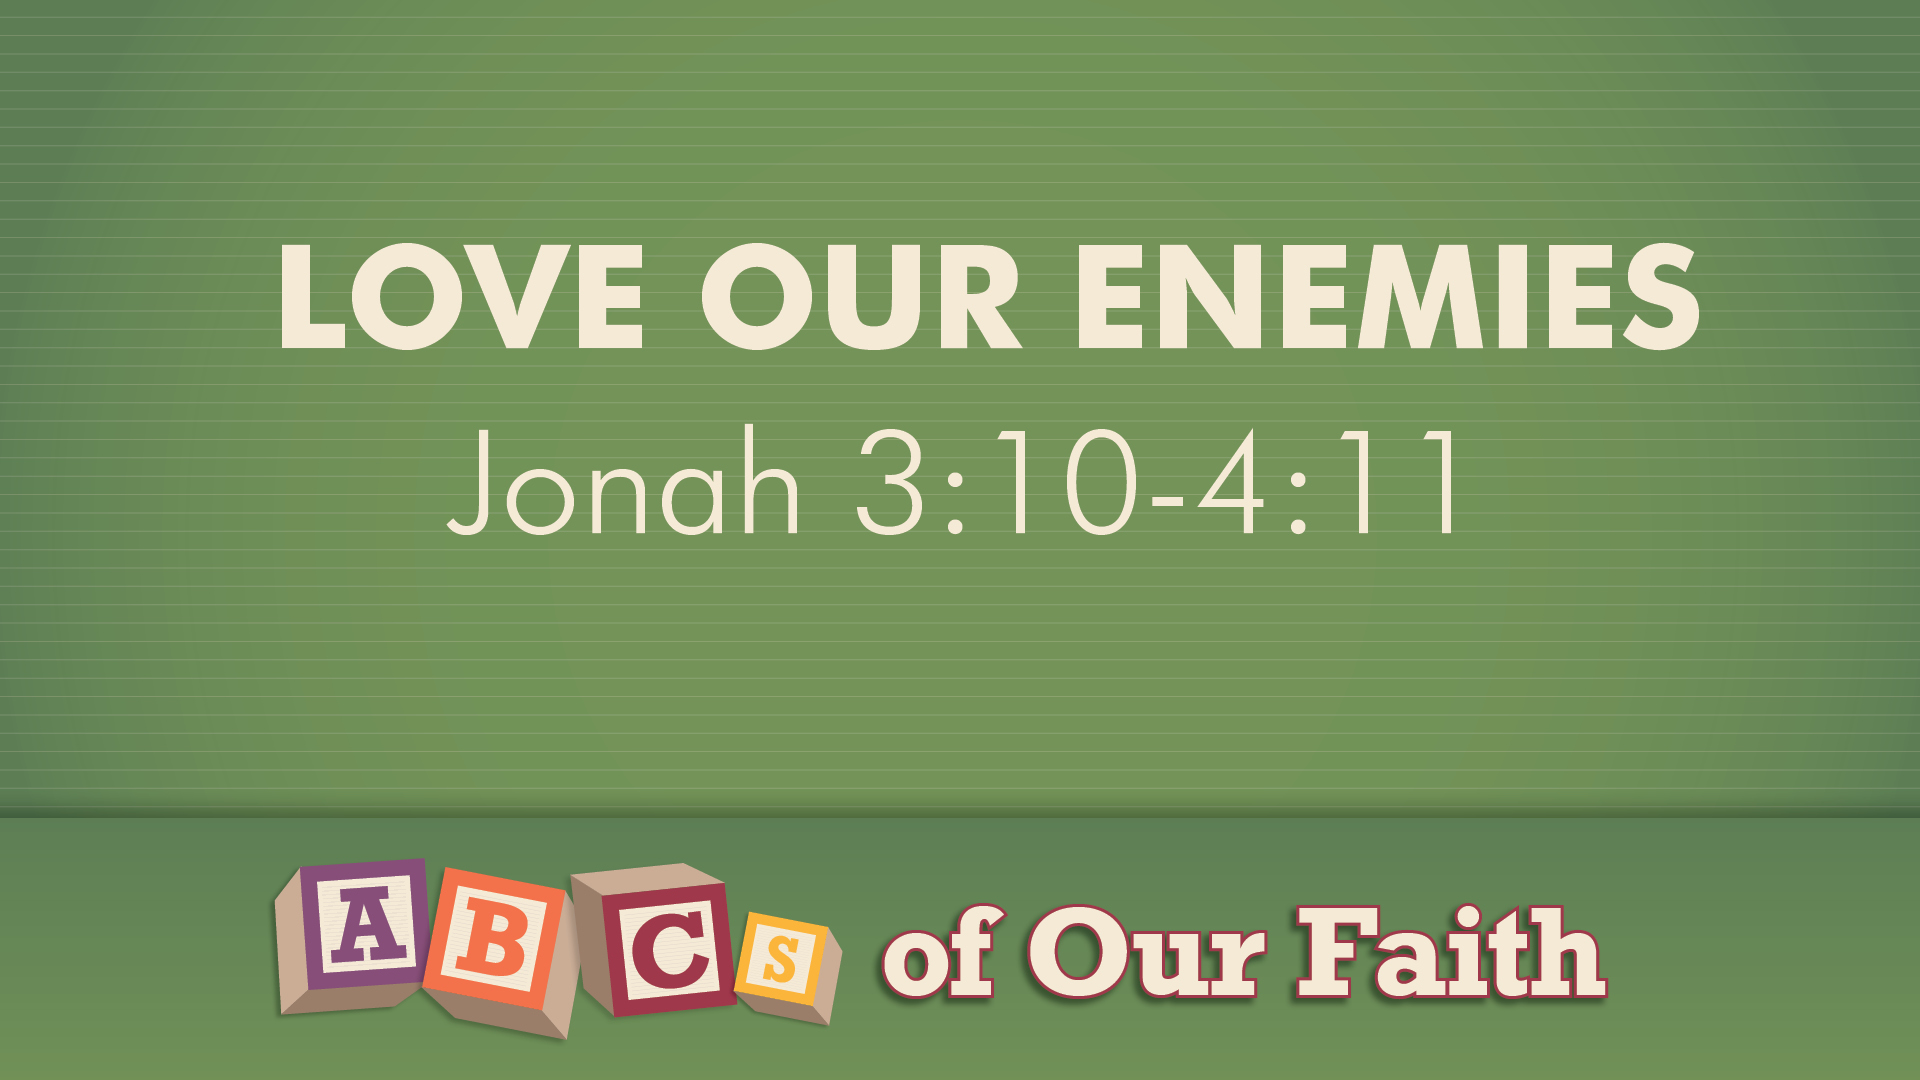 ABCs of our faith master graphic OCT18